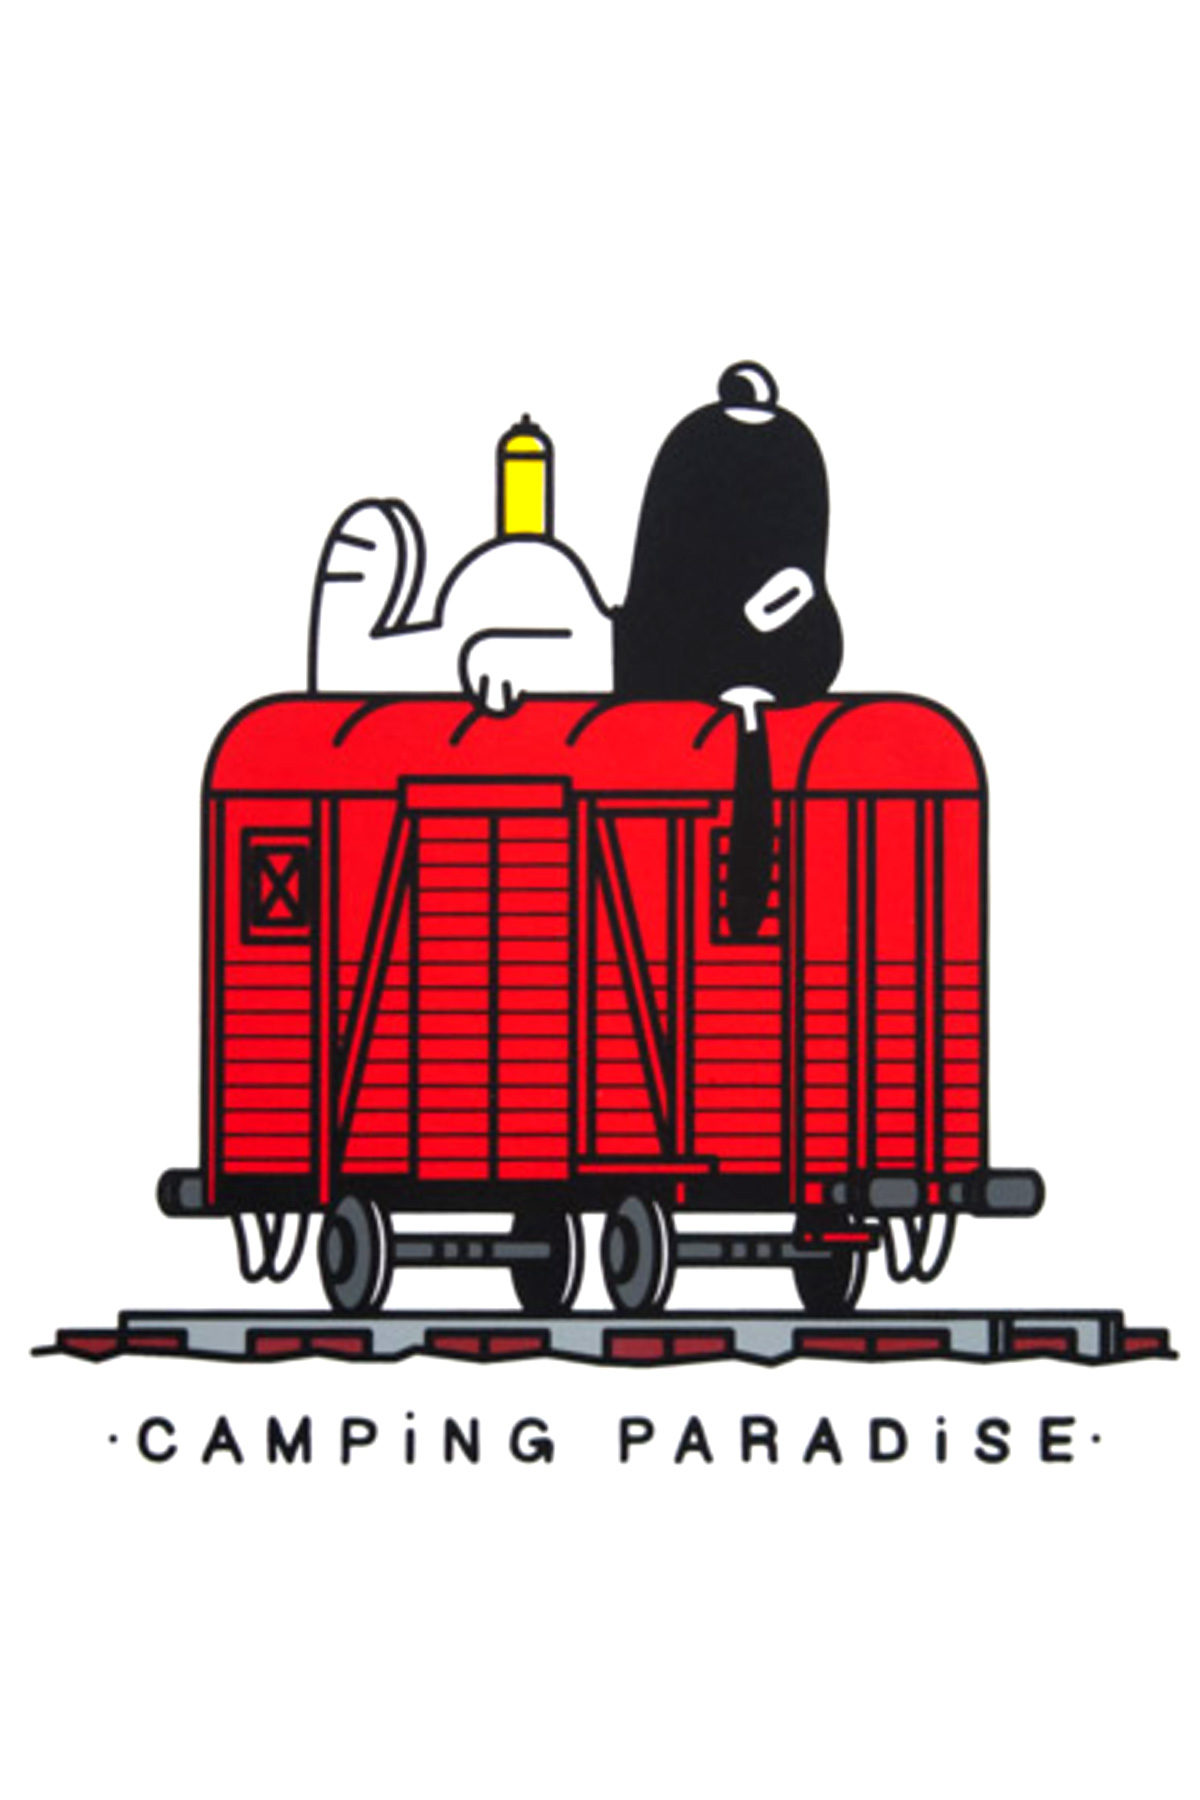 Stampa CAMPING PARADISE by Vandals On Holidays